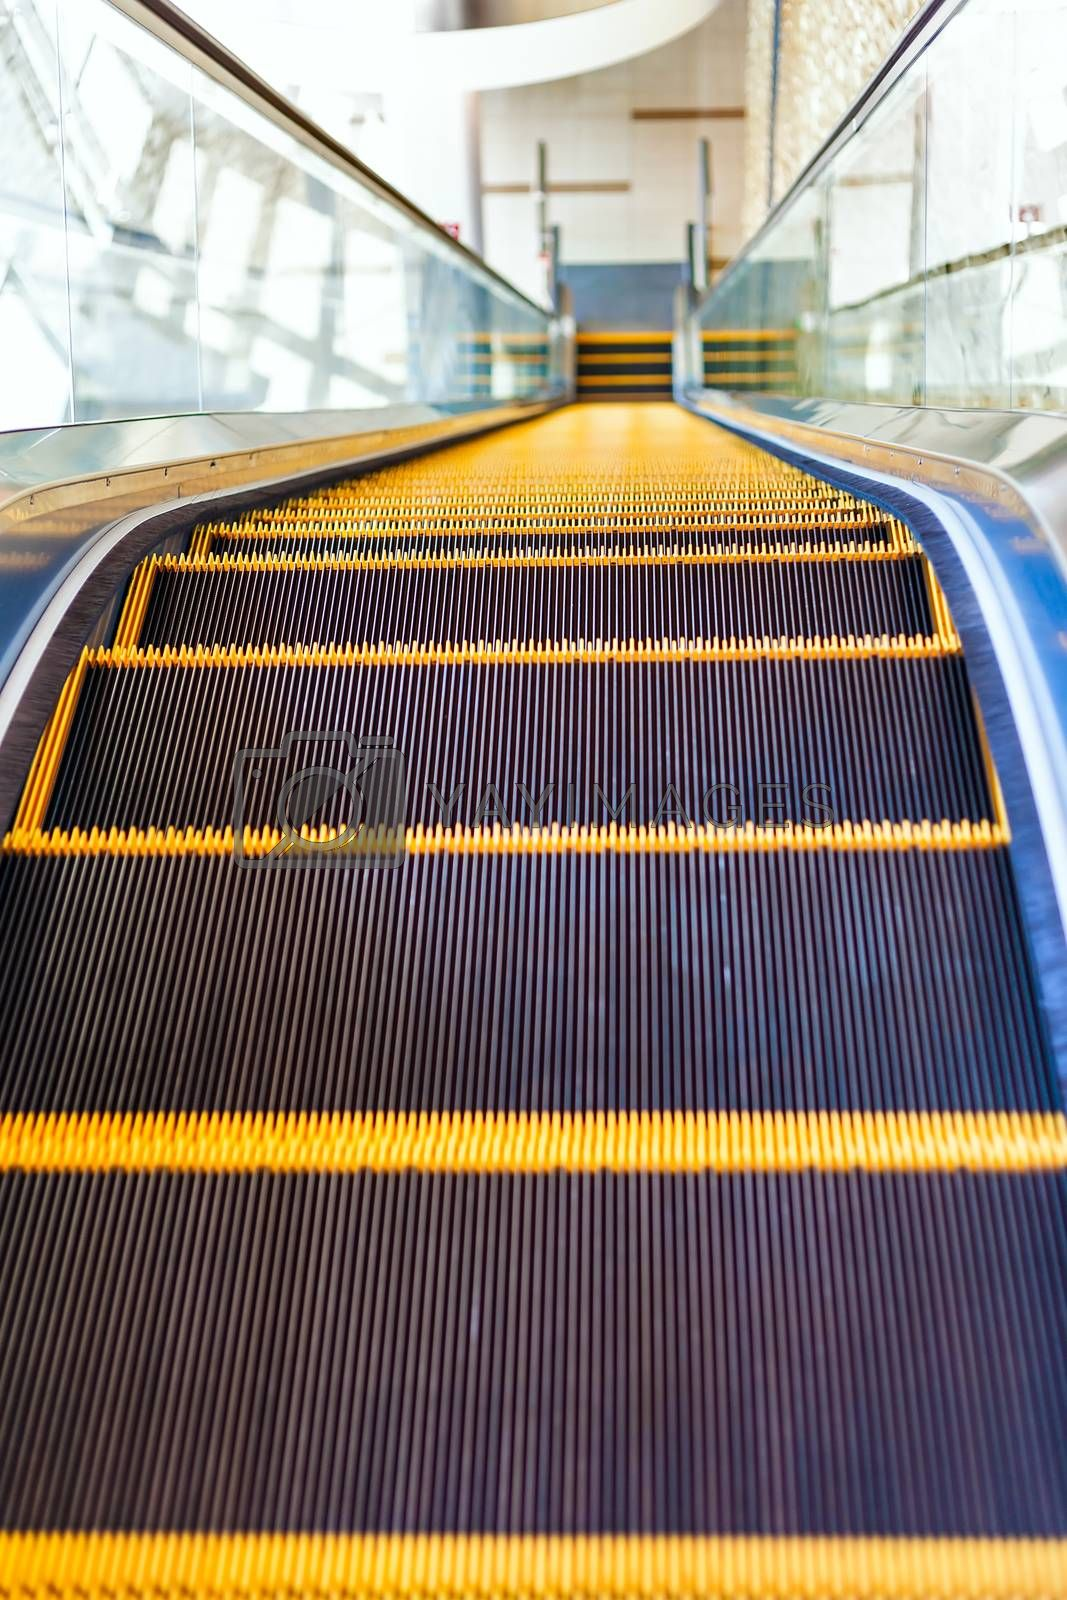 Escalator or moving staircase in modern architecture